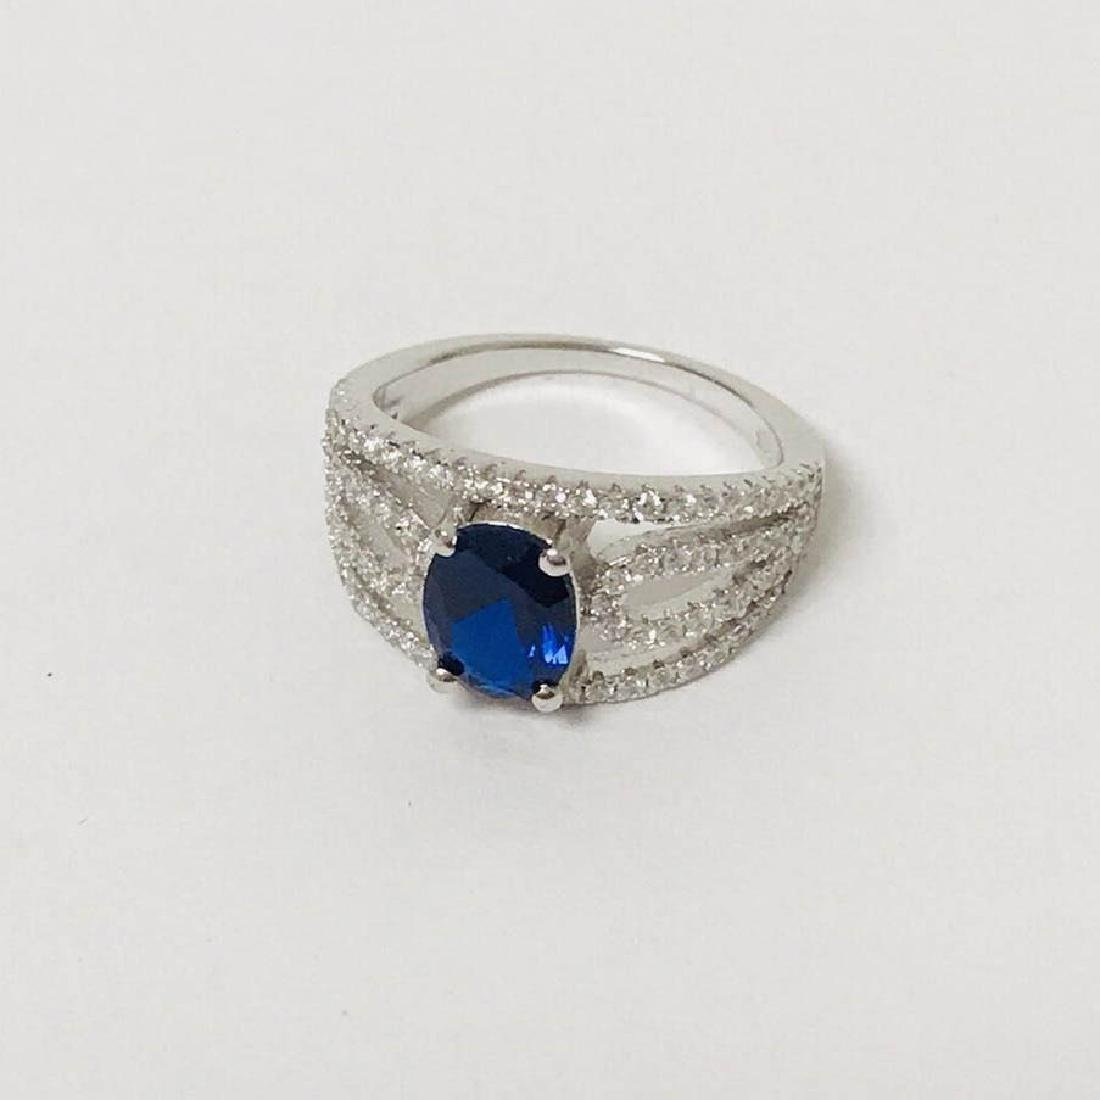 925 Silver with Blue Gem Stone Ring